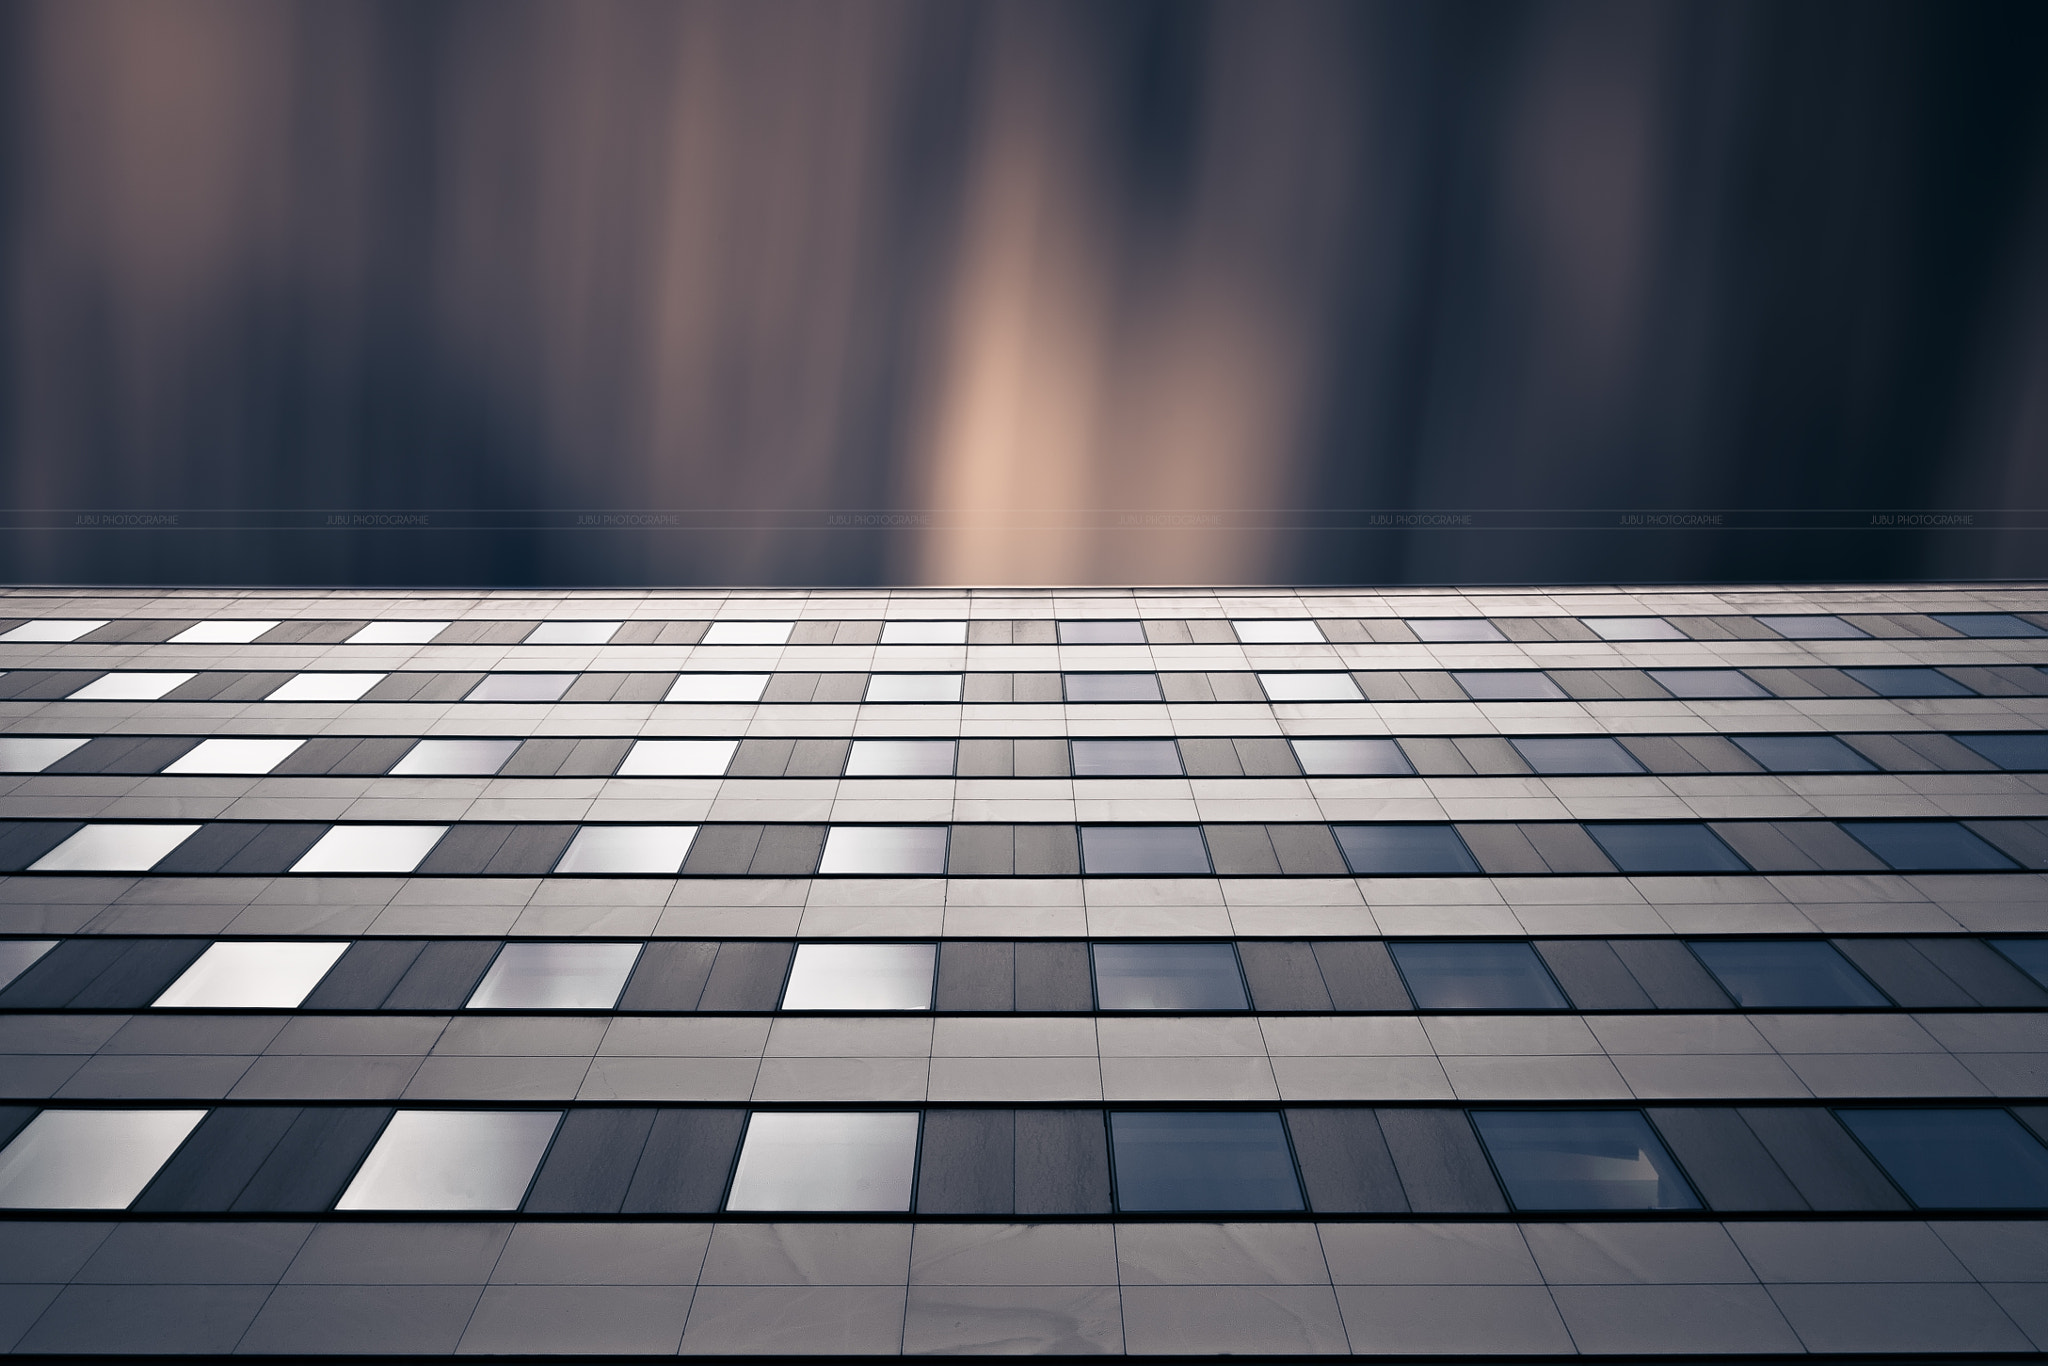 Photograph • Abstract wall • by Jubu Photographie on 500px